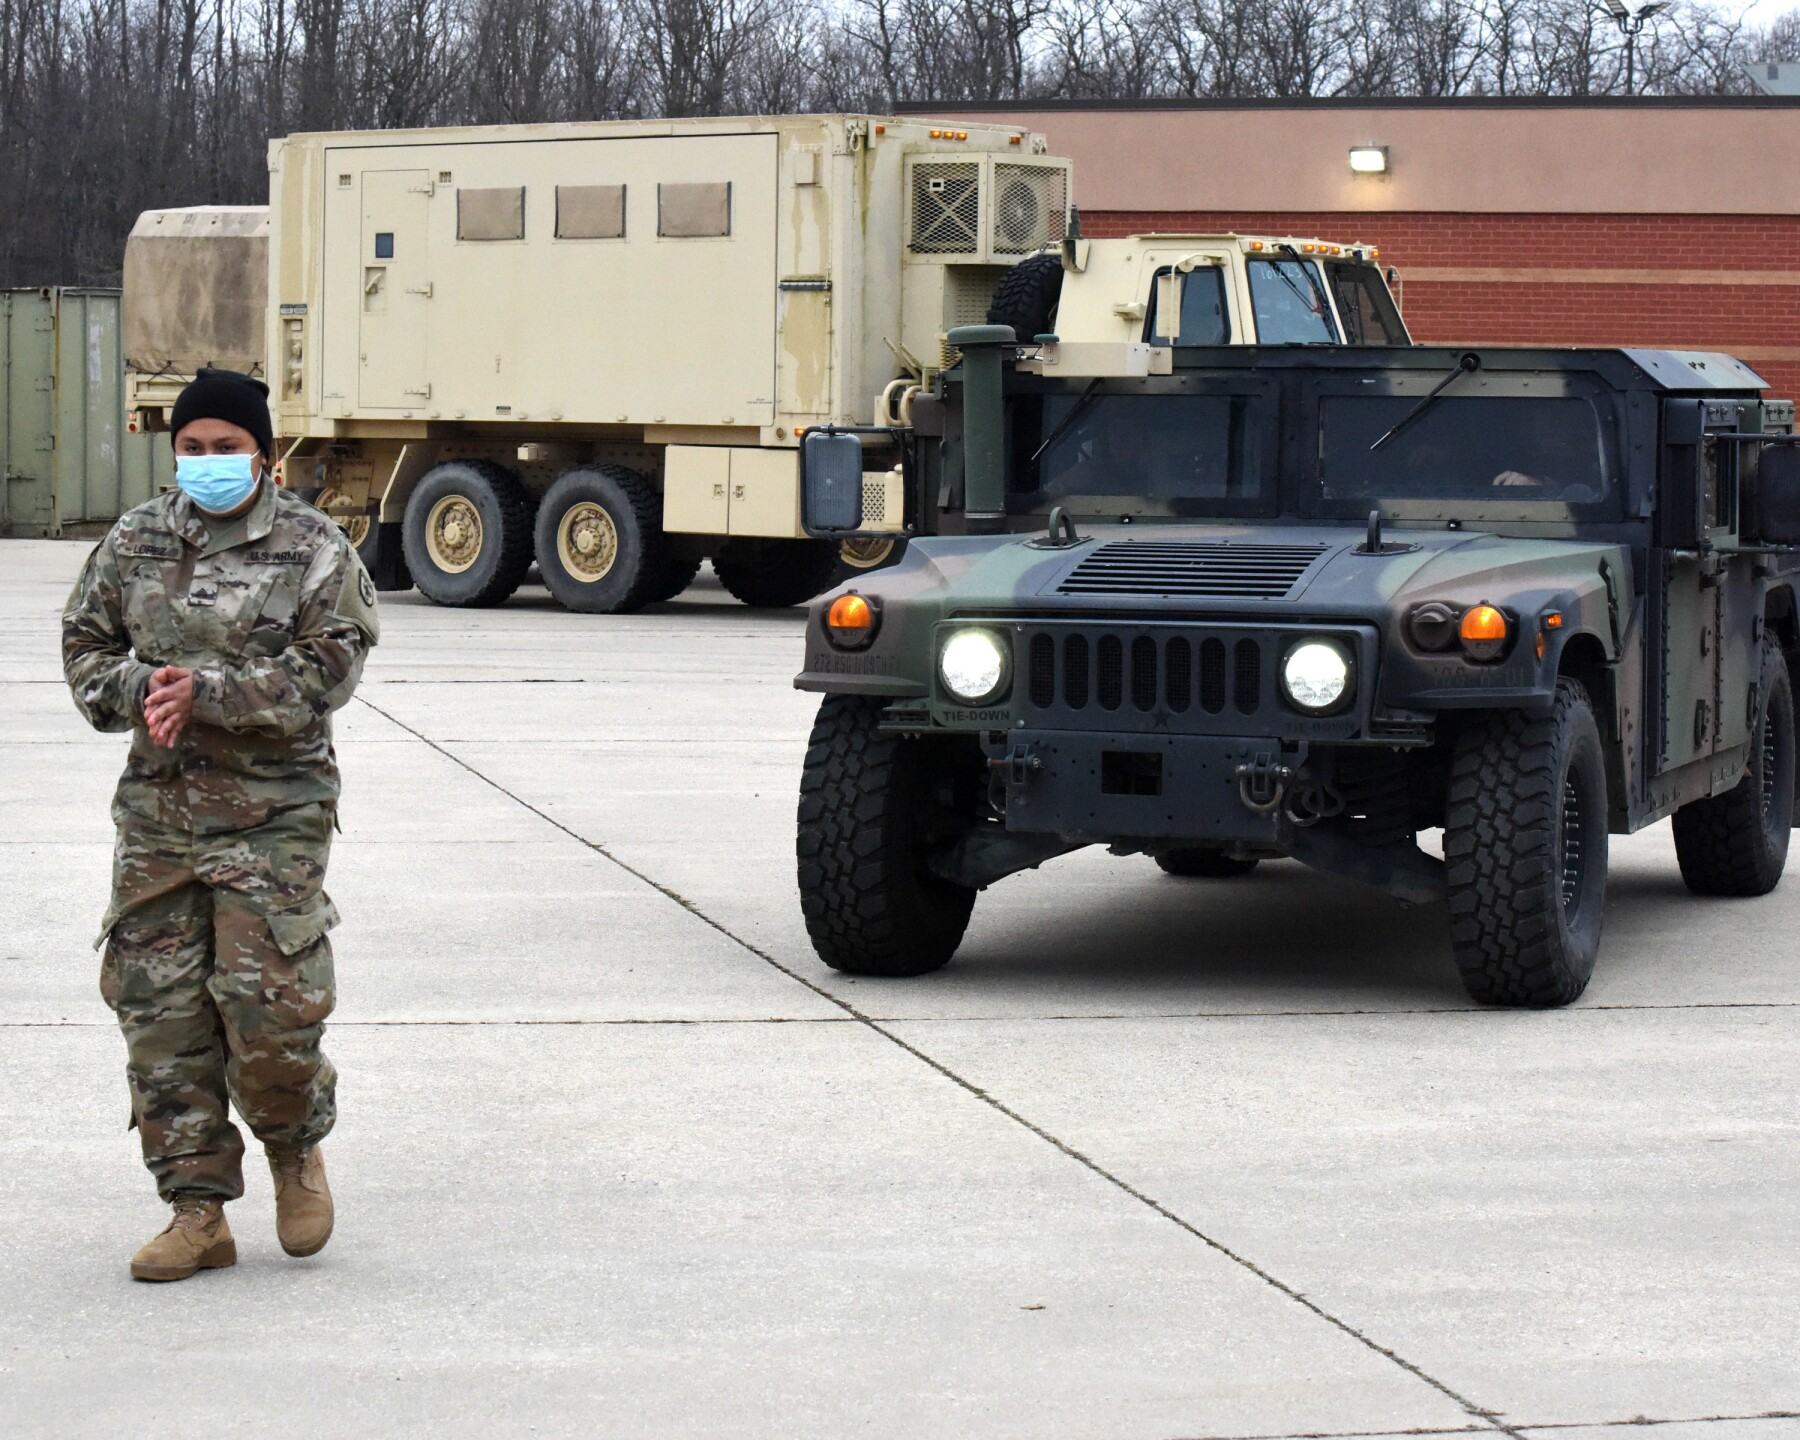 Michigan National Guard to join support effort for Inauguration in Washington, D.C.